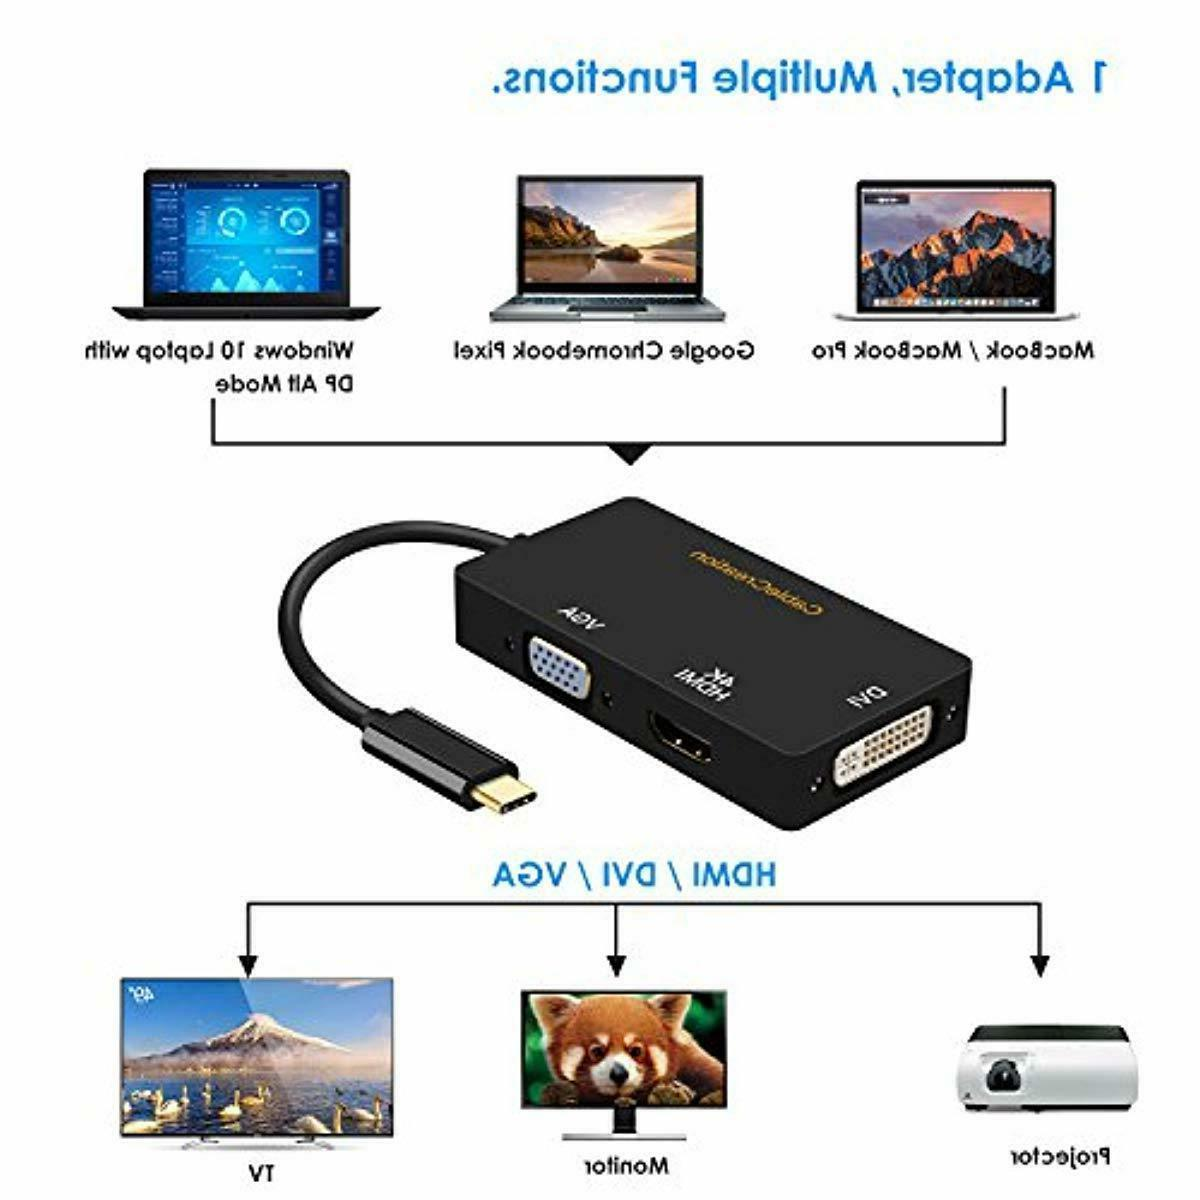 CableCreation 1 USB to DVI 4K Adapter, Air